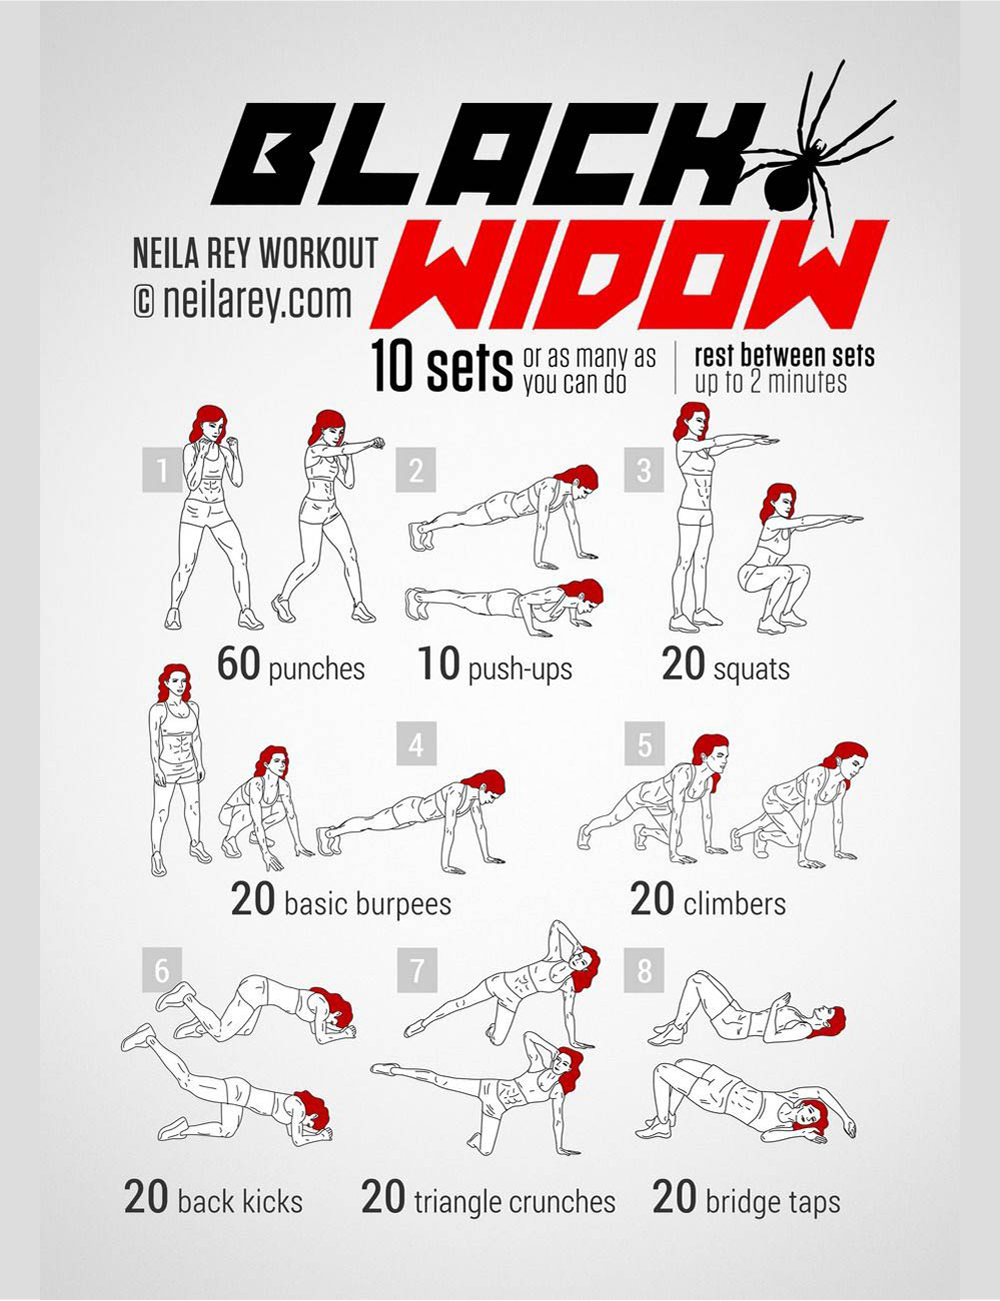 Superhelden workouts